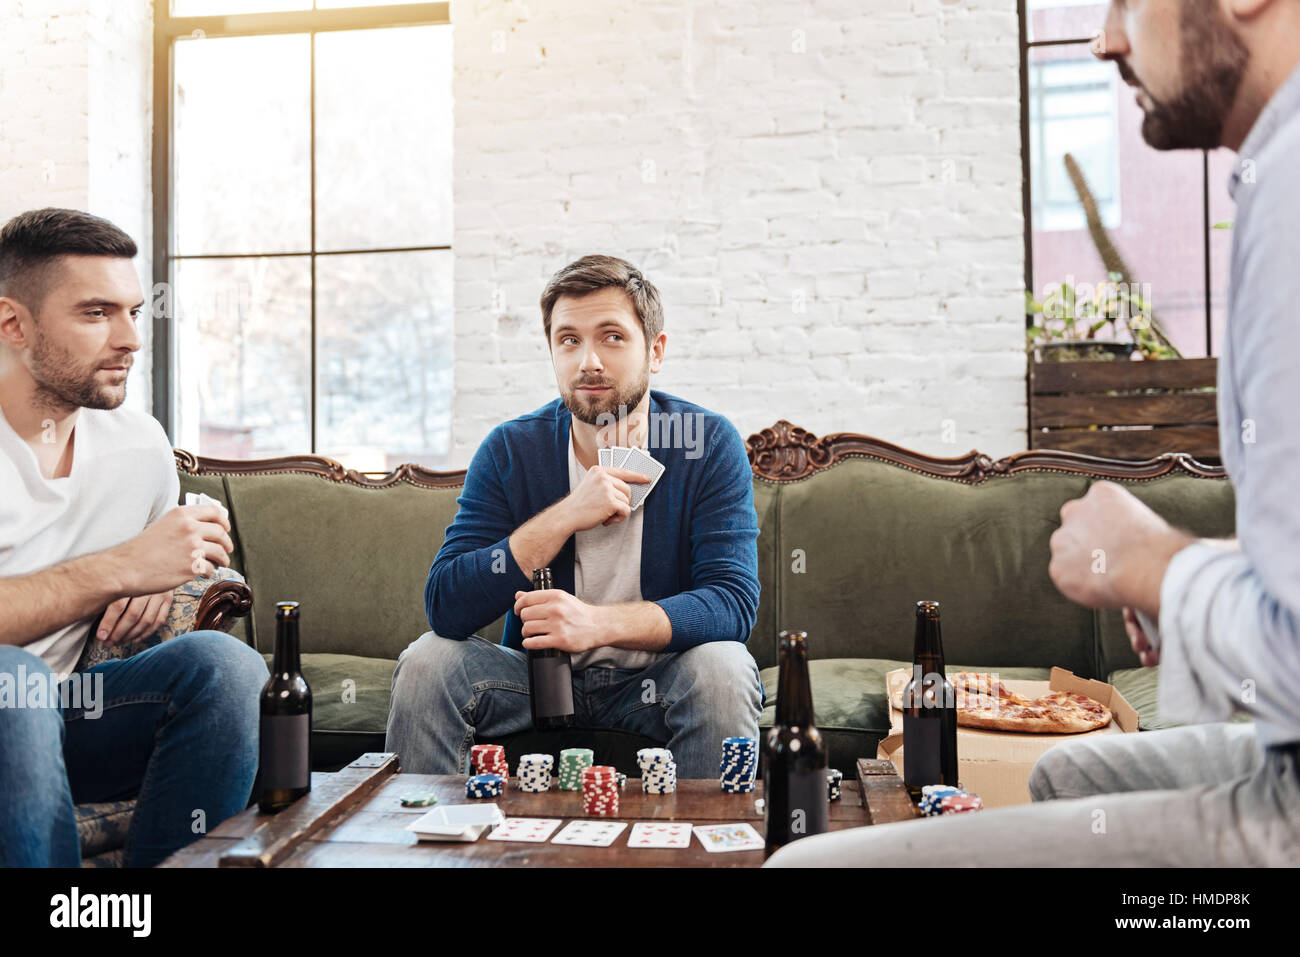 Handsome good looking man hiding his cards - Stock Image